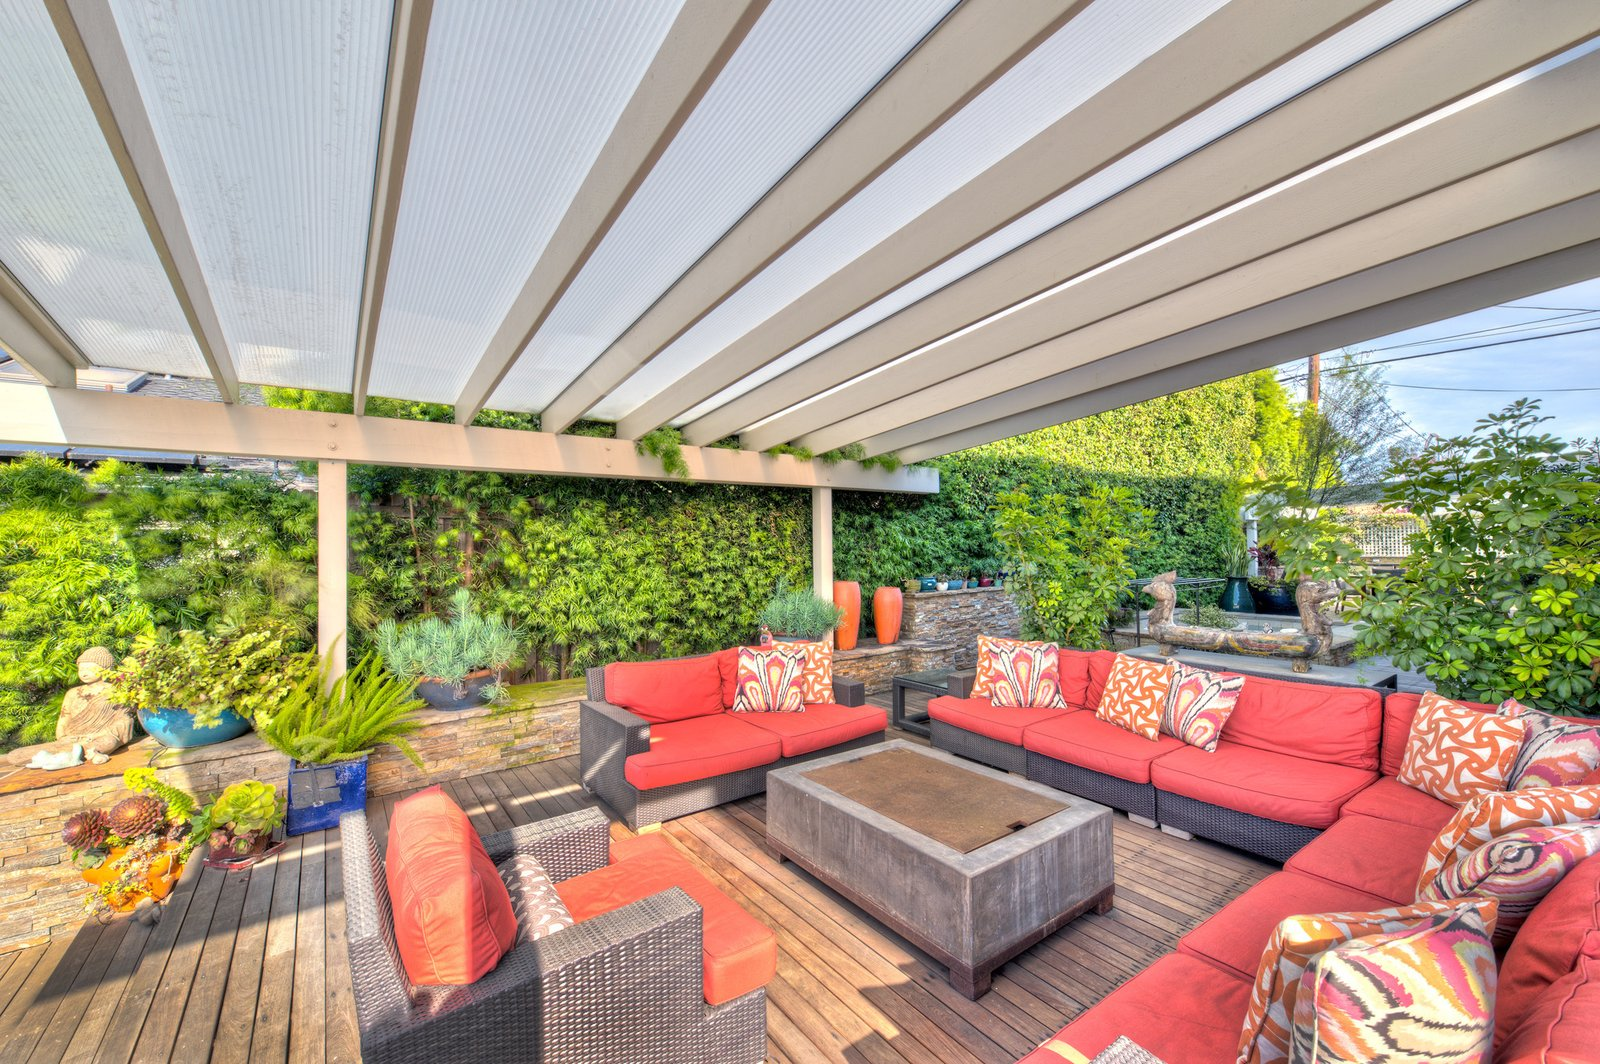 Equipped with outdoor living, kitchen and dining areas—and a stunning fire pit, the deck also boasts a built-in spa. Tagged: Outdoor. On the Market For $4.5M, This Venice Beach Compound Captures the Essence of Indoor-Outdoor Living - Photo 2 of 9